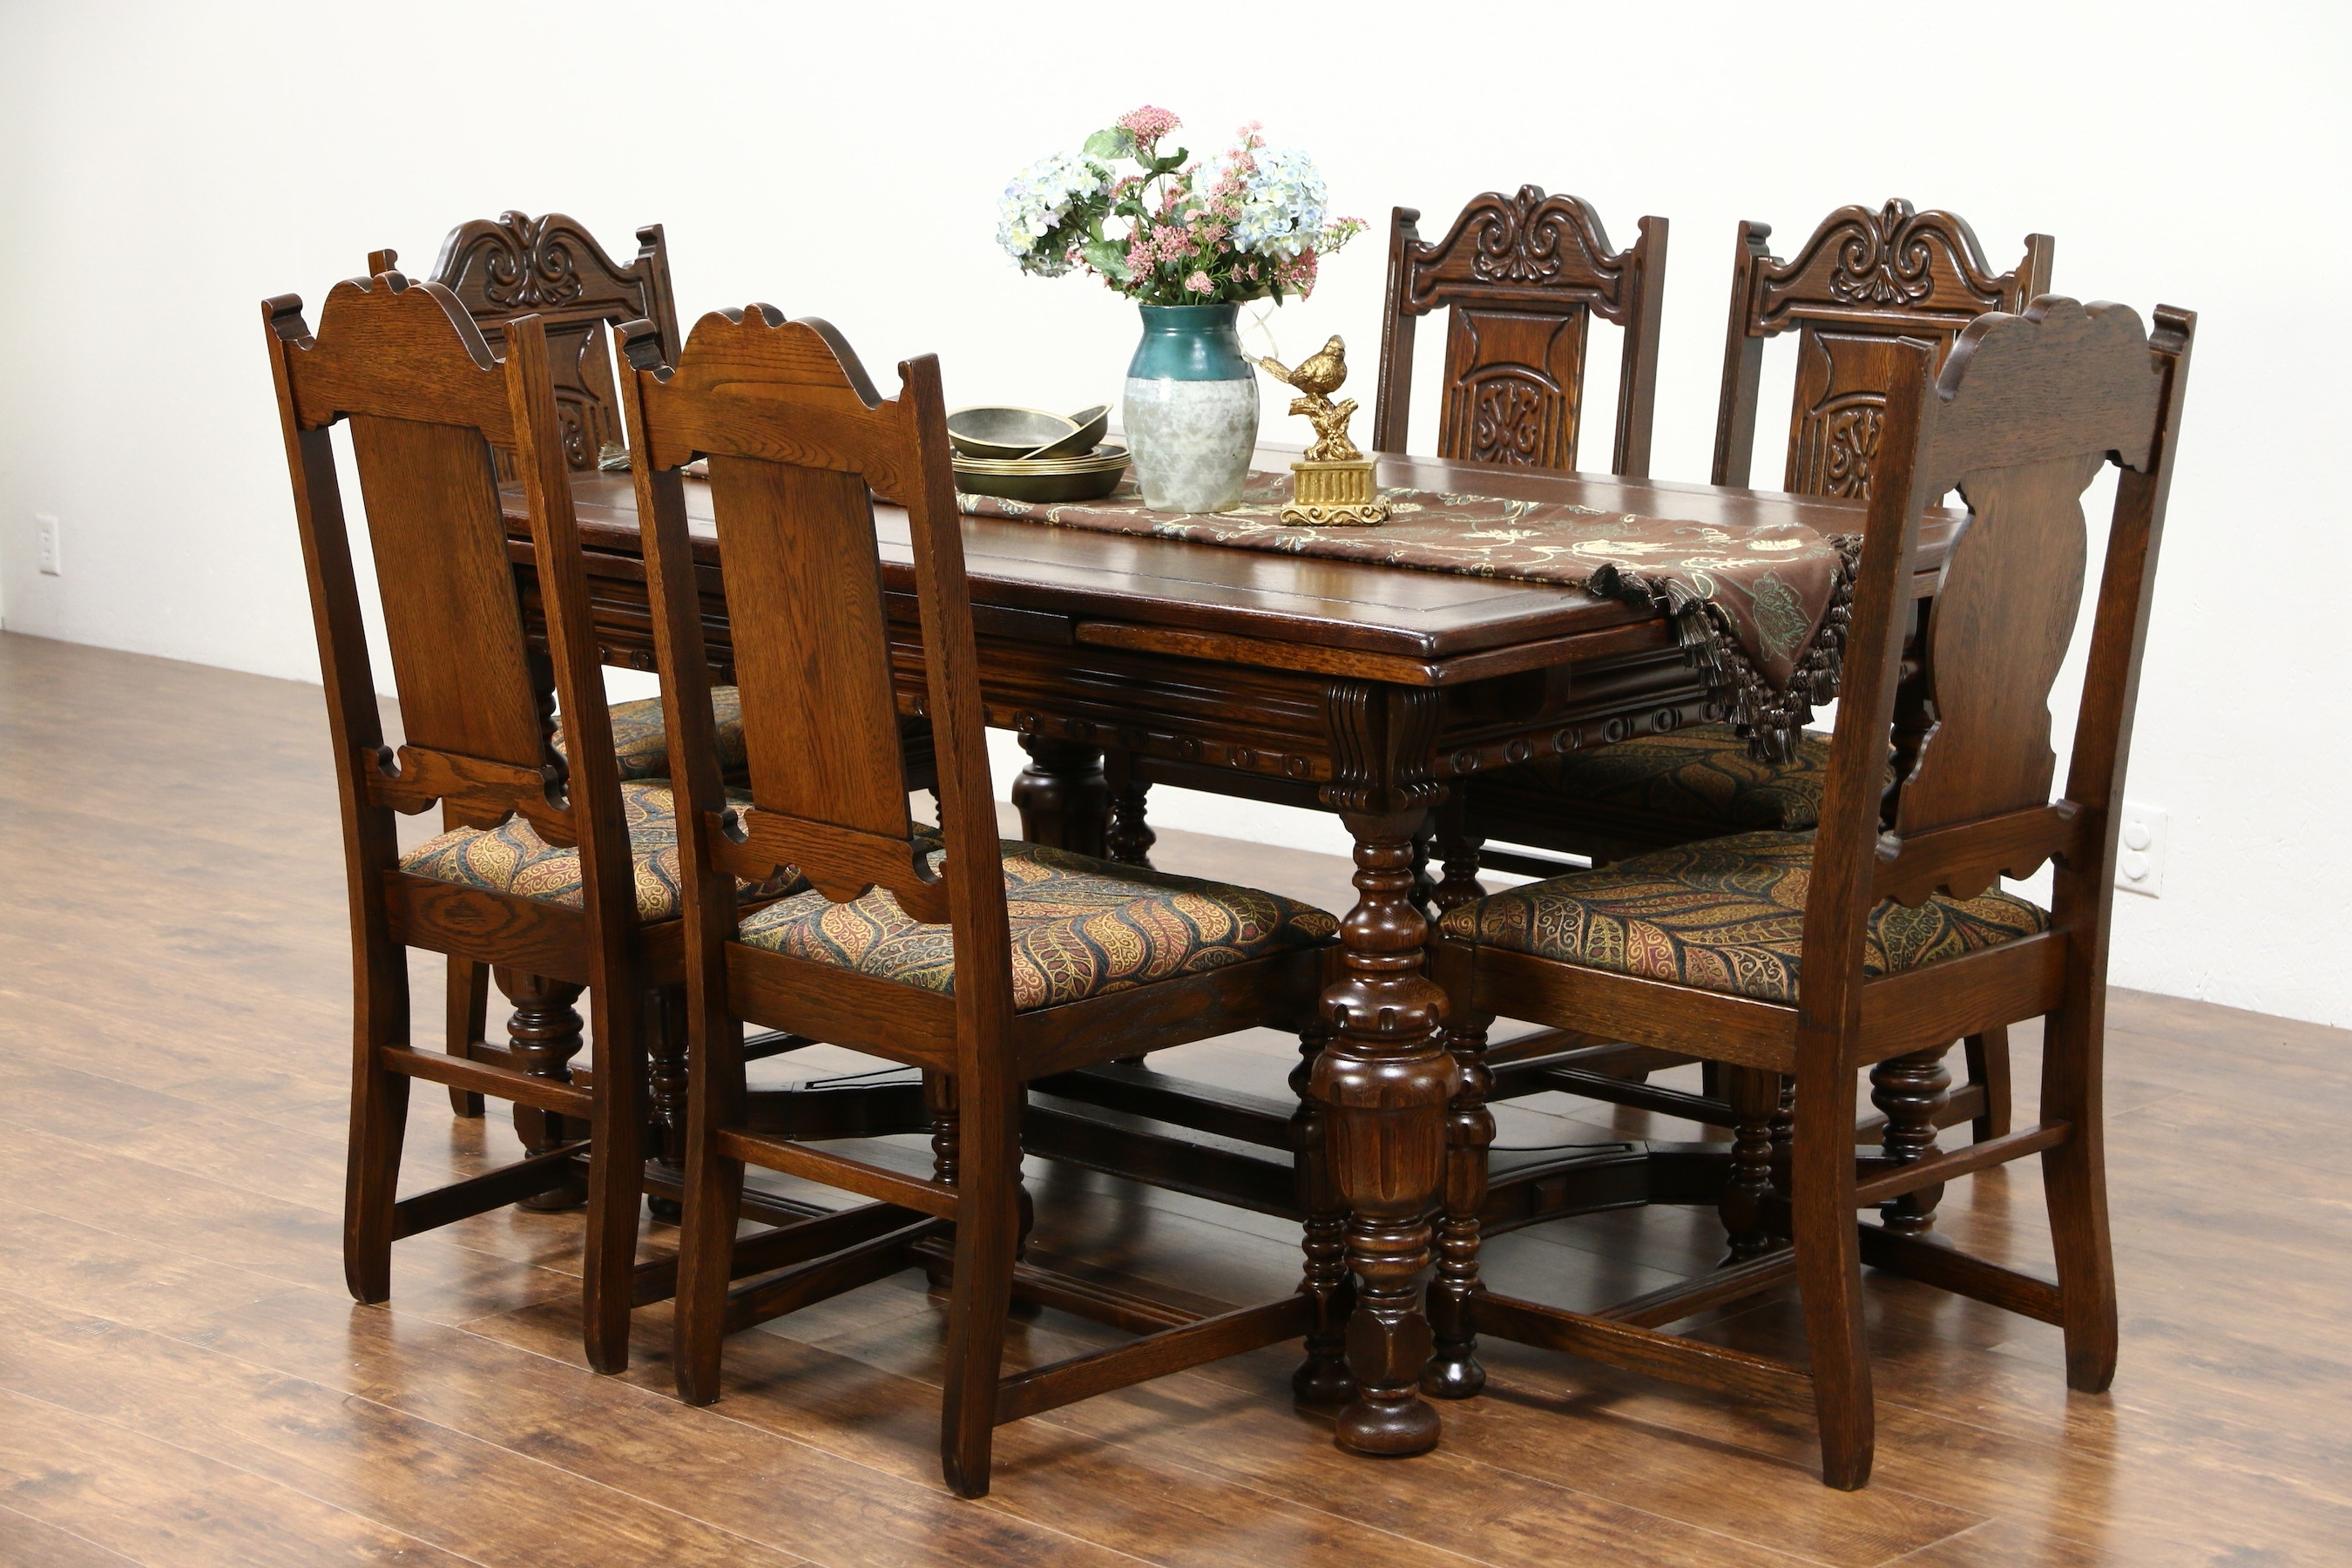 Sold – Tudor 1925 Antique Carved Oak Dining Set, Table, 6 Chairs For Trendy Oak Dining Set 6 Chairs (View 23 of 25)